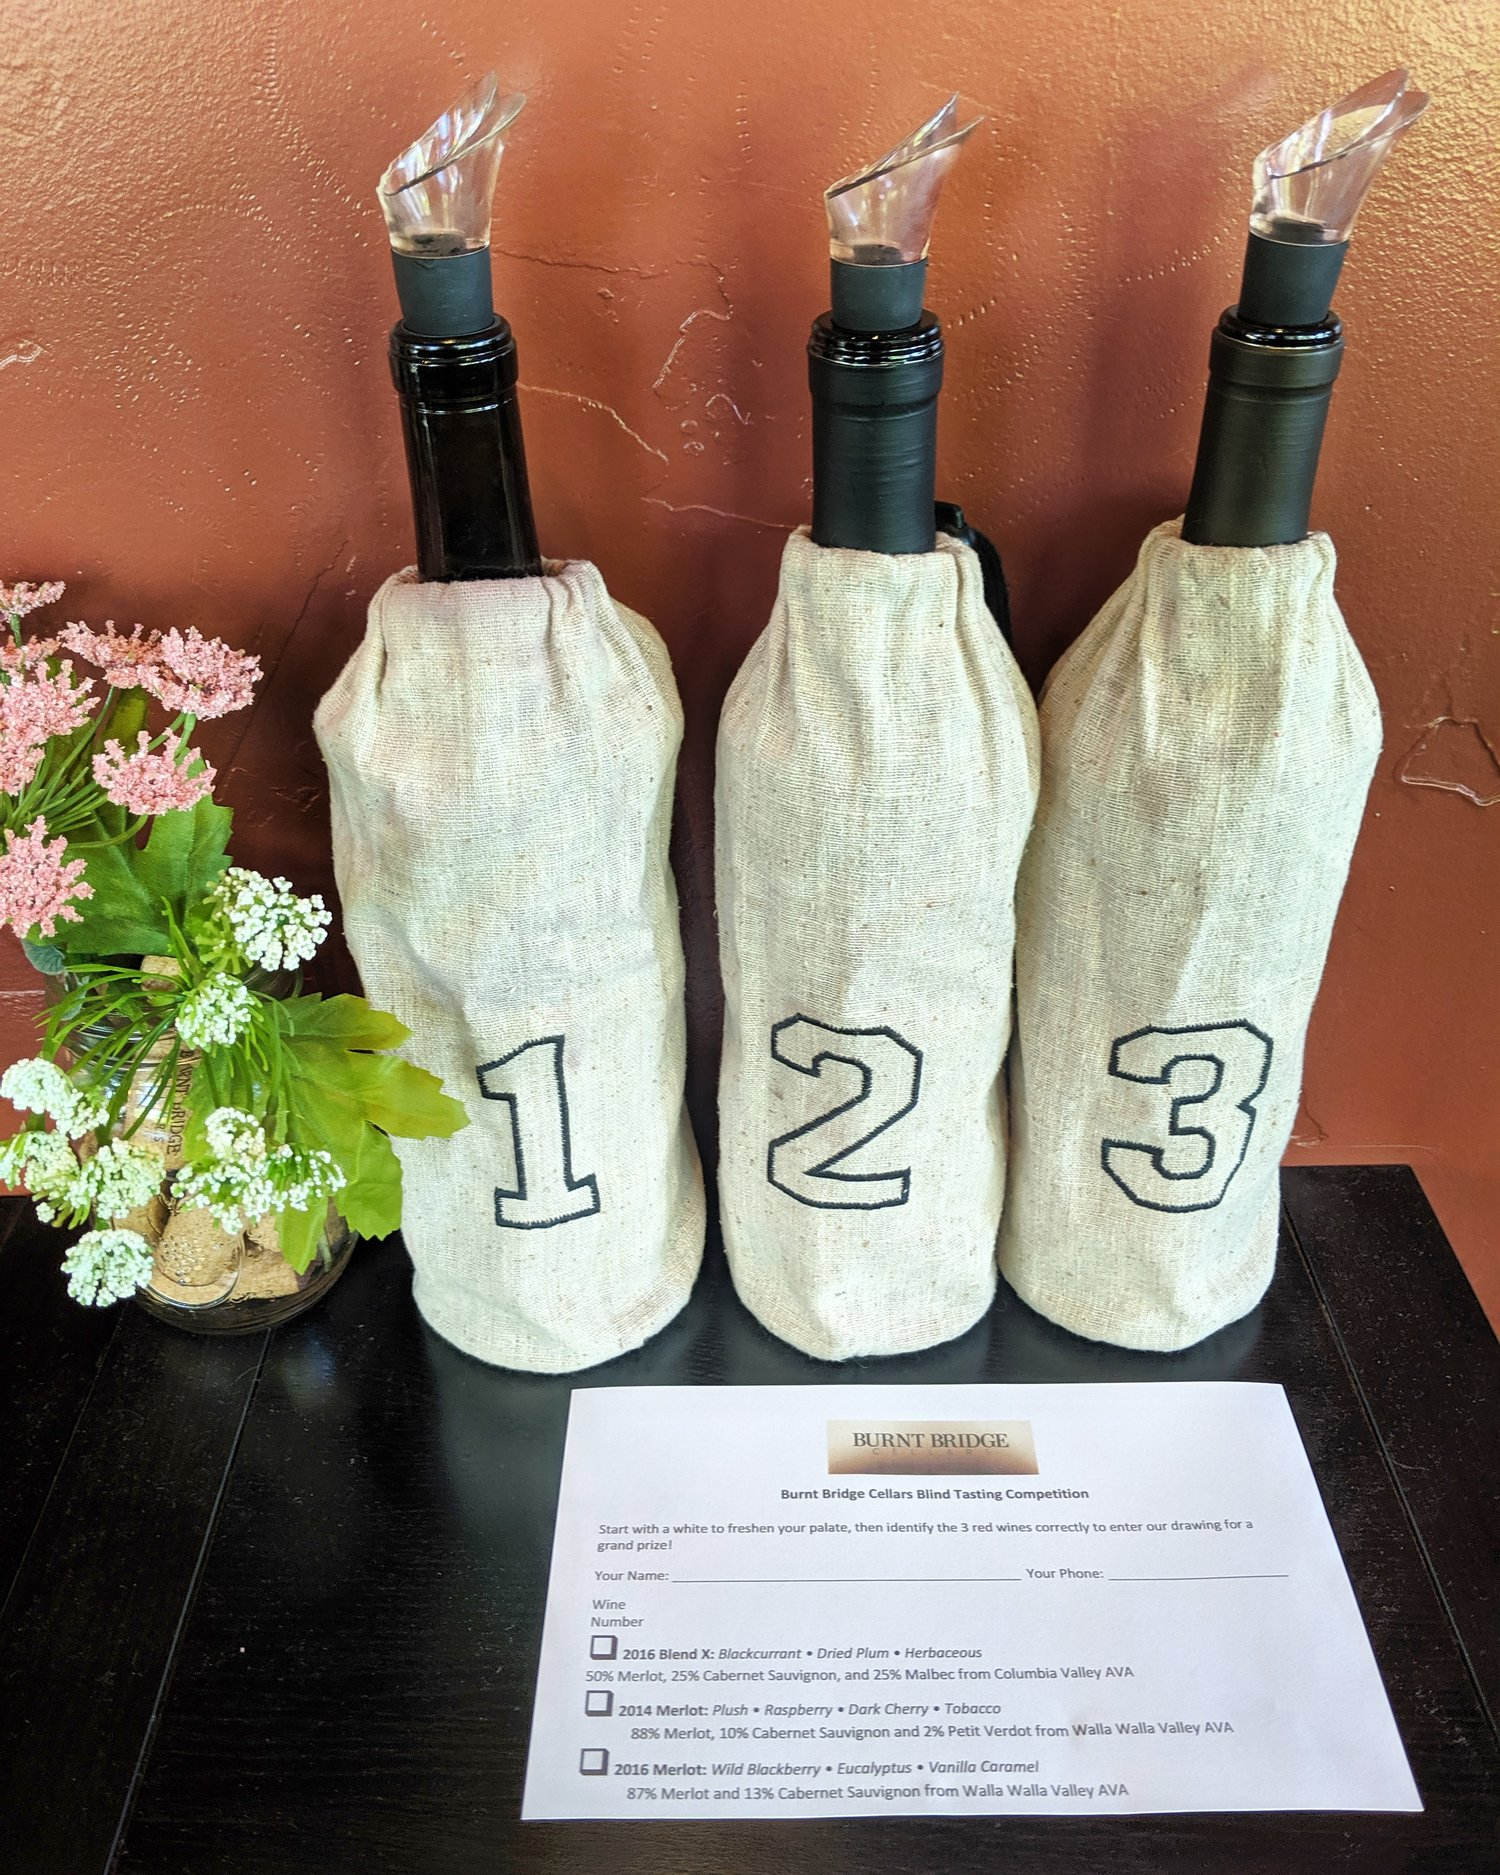 A Carafe That Is A Blind Glass blind tasting competition! — burnt bridge cellars